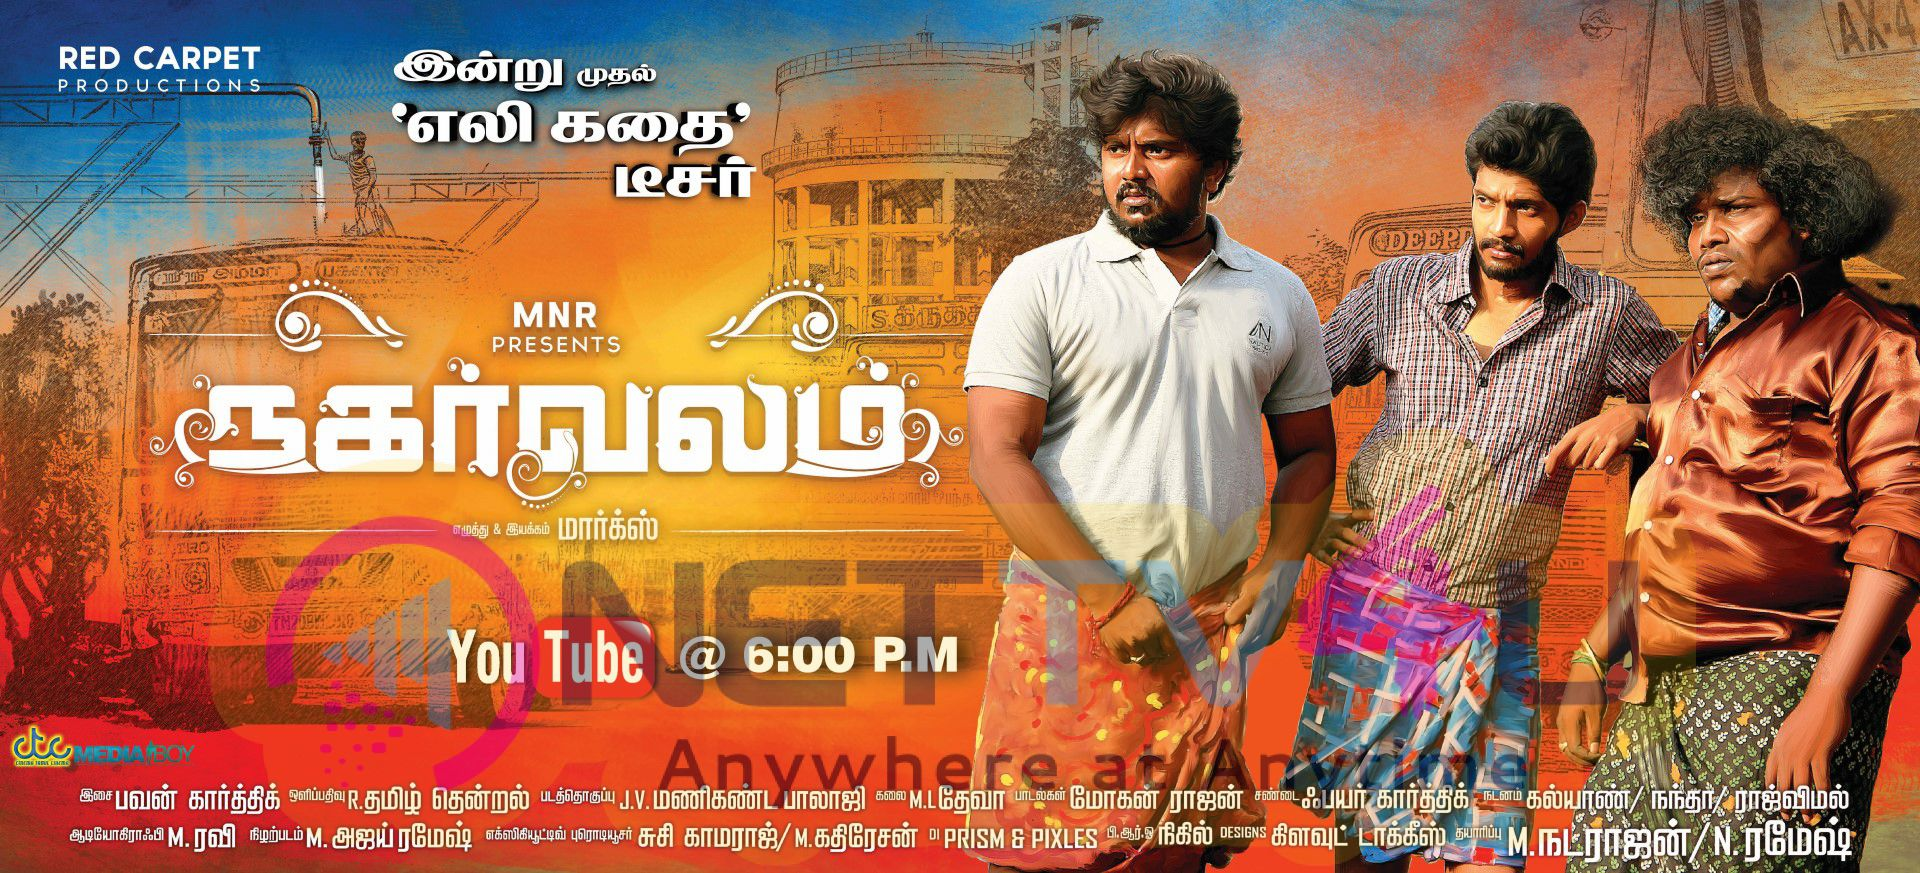 Nagarvalam Tamil Movie Teaser From Today Poster